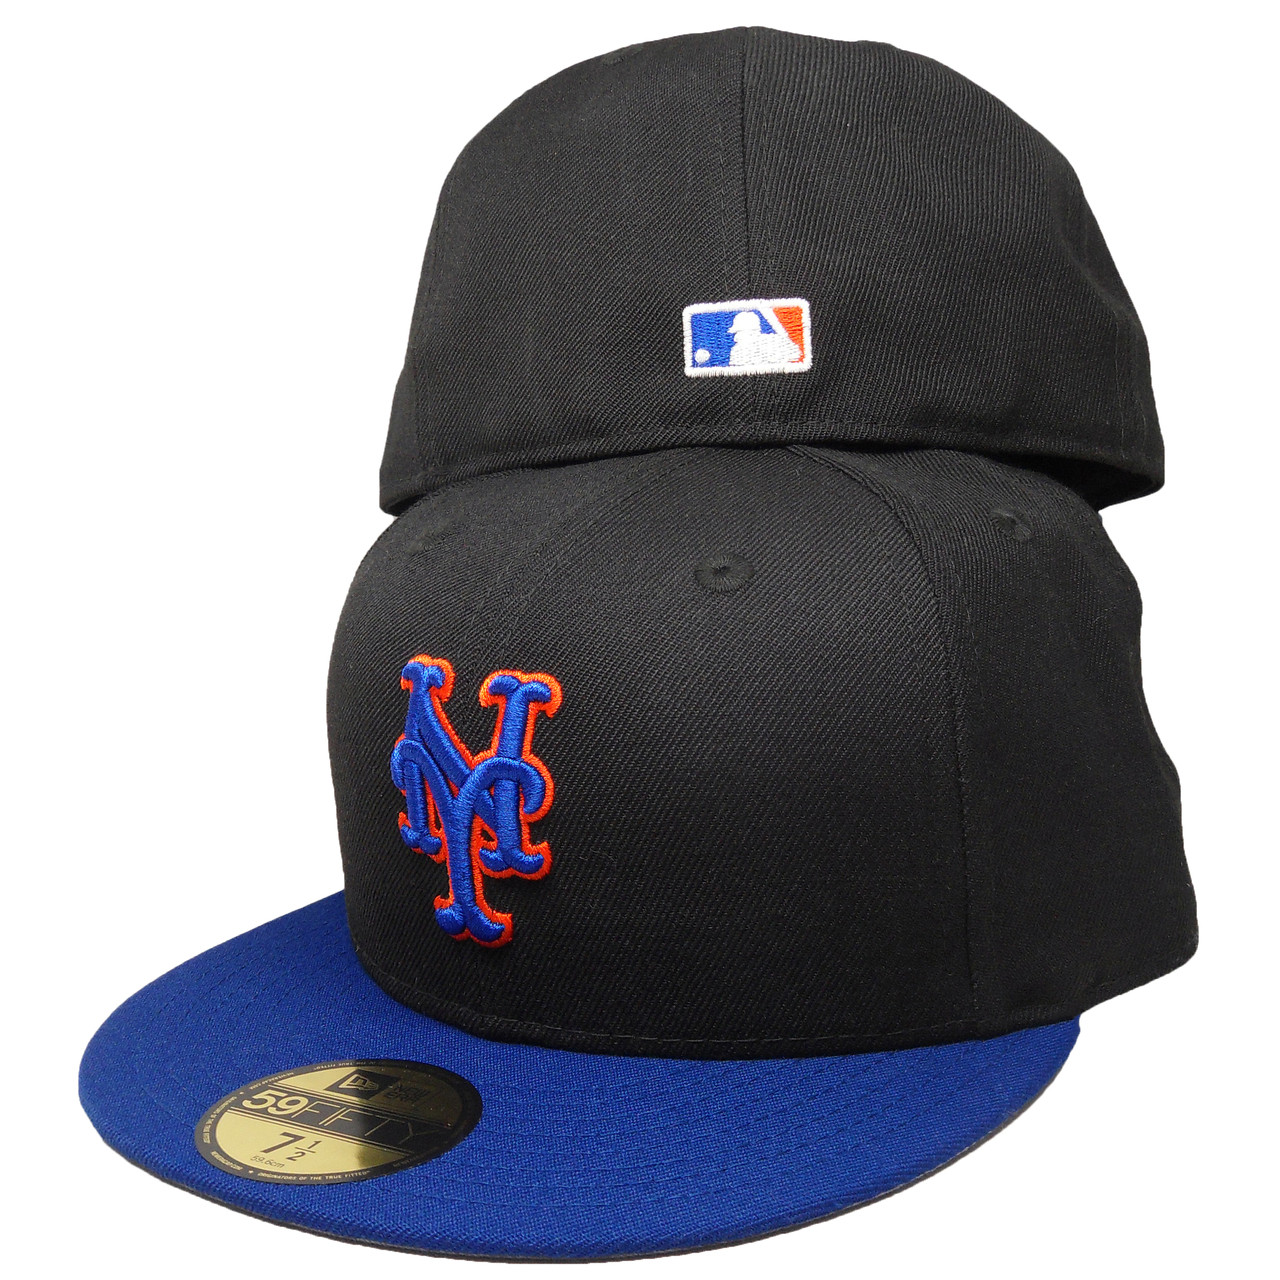 huge selection of 41248 51351 New York Mets Custom New Era 59Fifty Fitted Hat - Black, Royal, Orange